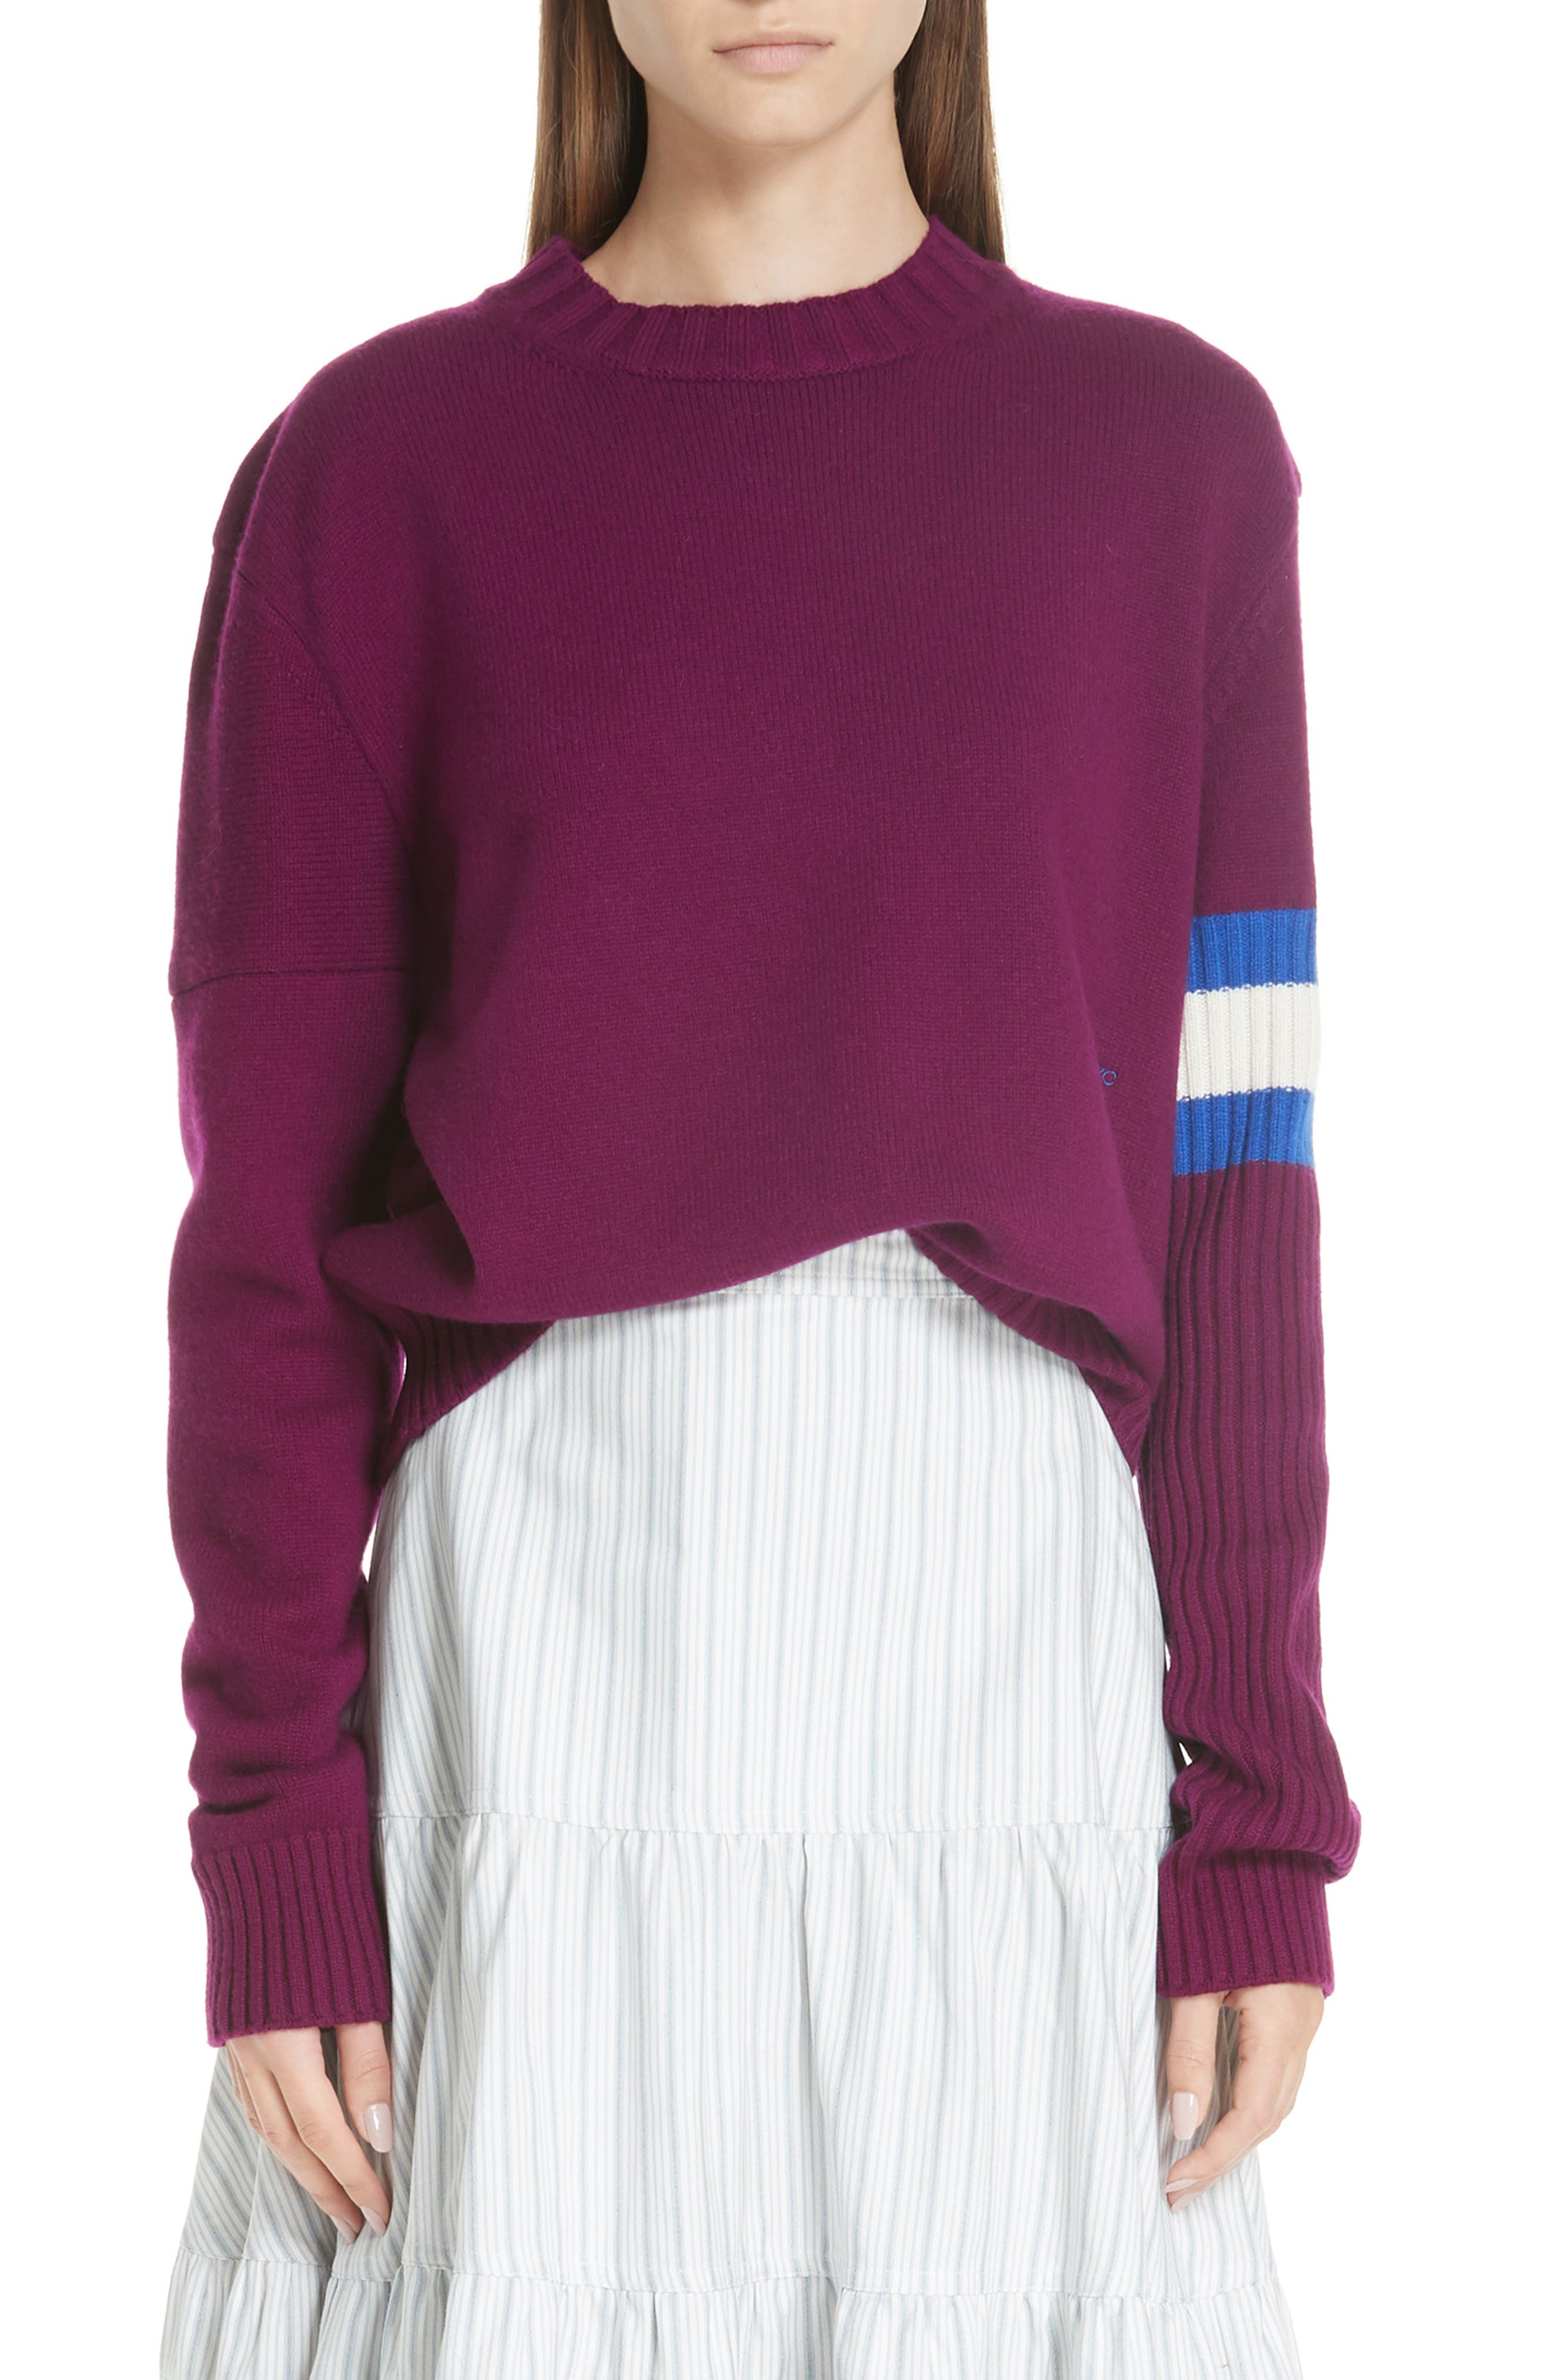 Cashmere Stripe Sleeve Sweater,                         Main,                         color, DEEP PURPLE BRIGHT BLUE WHITE